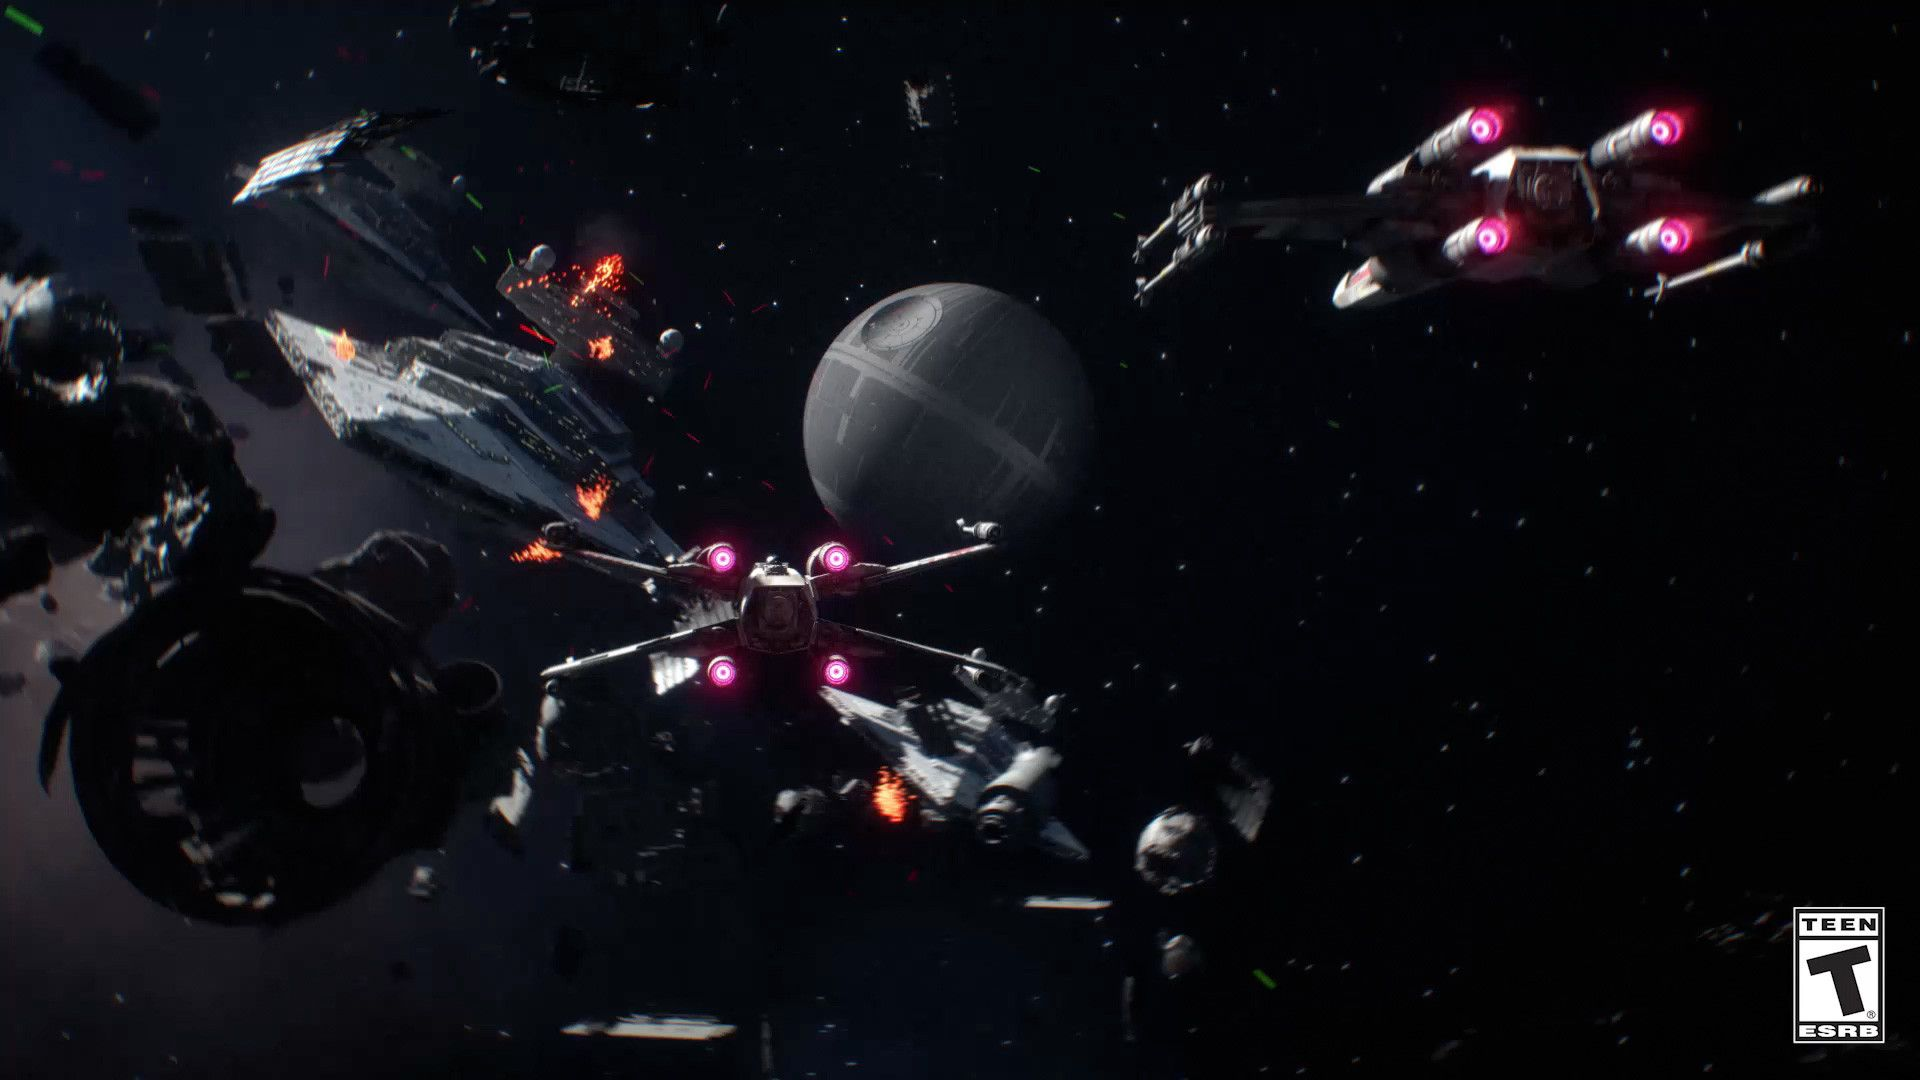 Star Wars Space Battle Wallpapers Top Free Star Wars Space Battle Backgrounds Wallpaperaccess